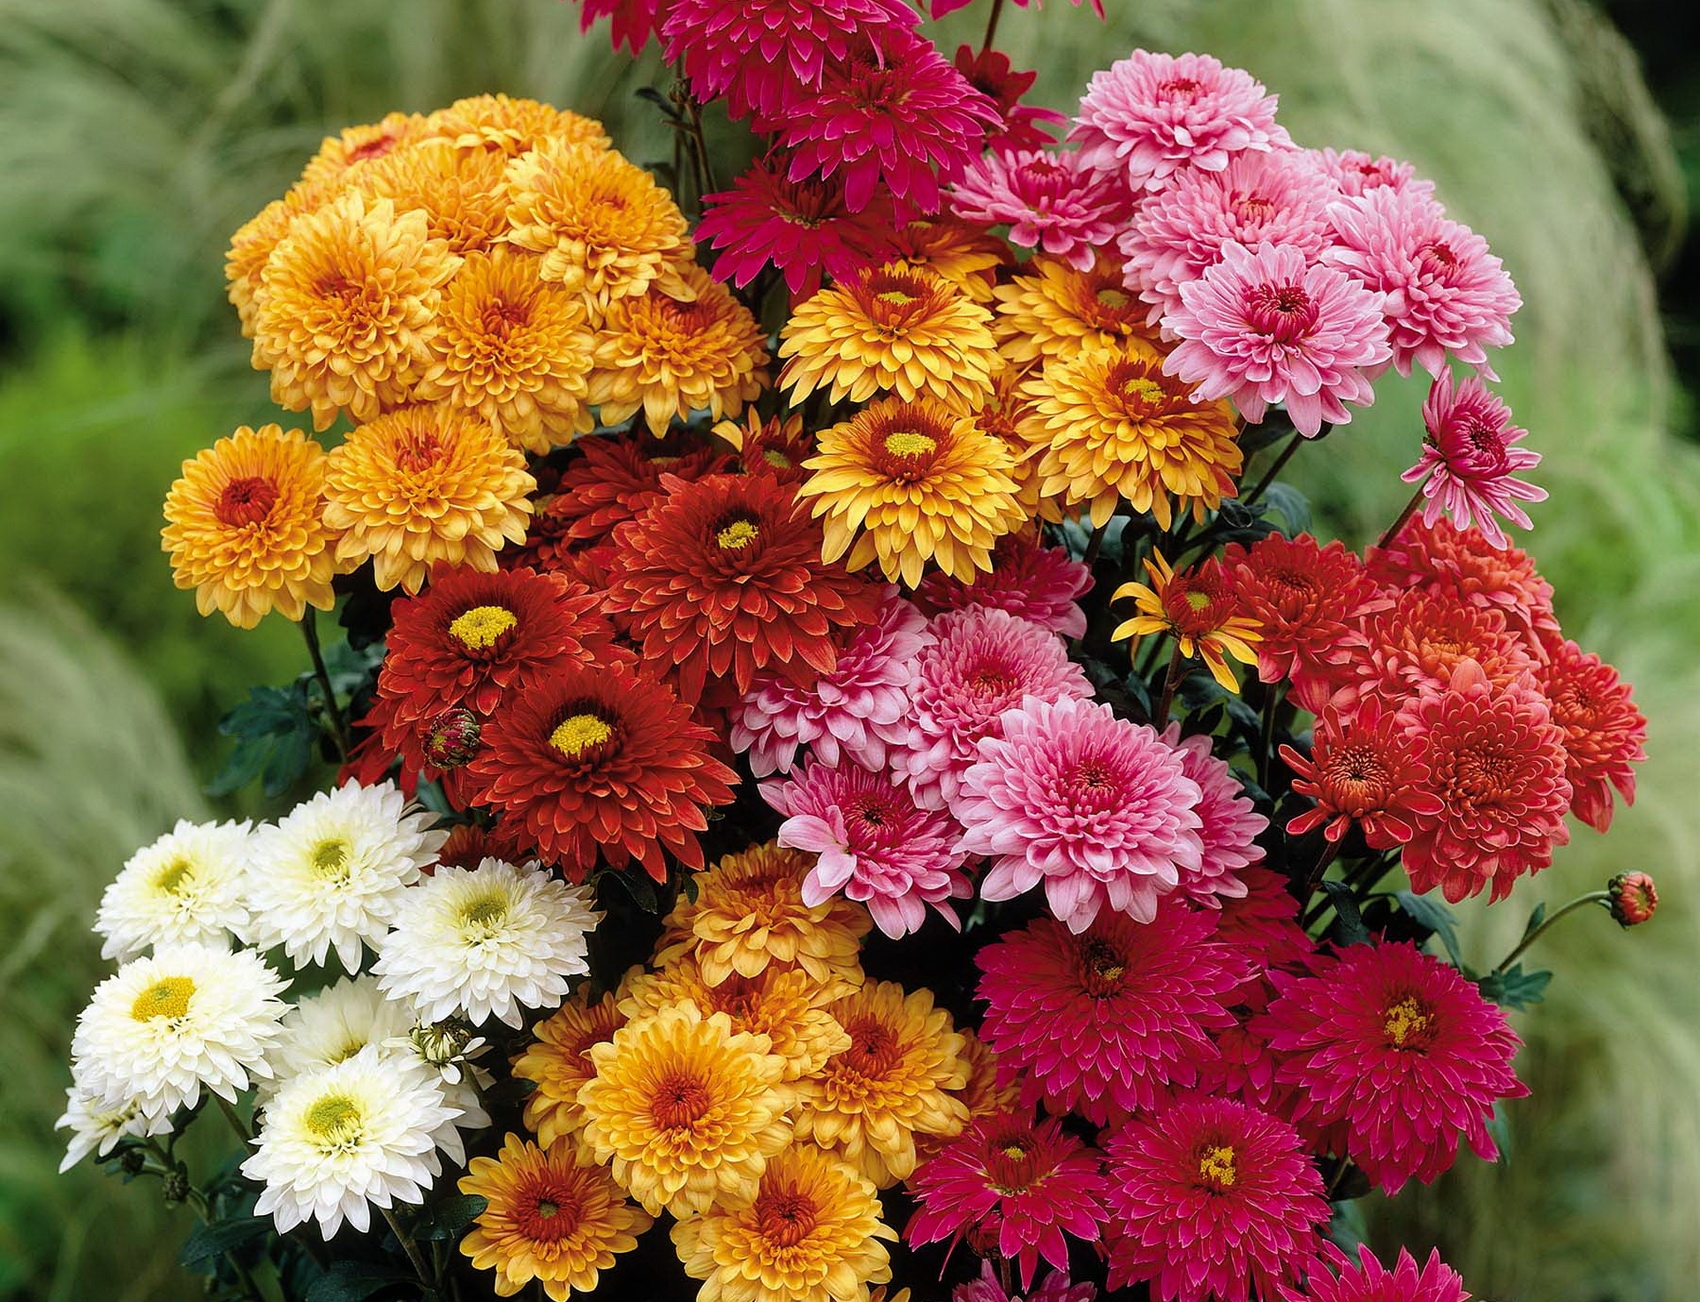 106738 download wallpaper Flowers, Bouquet, Different, Bright, Beauty, Chrysanthemum screensavers and pictures for free